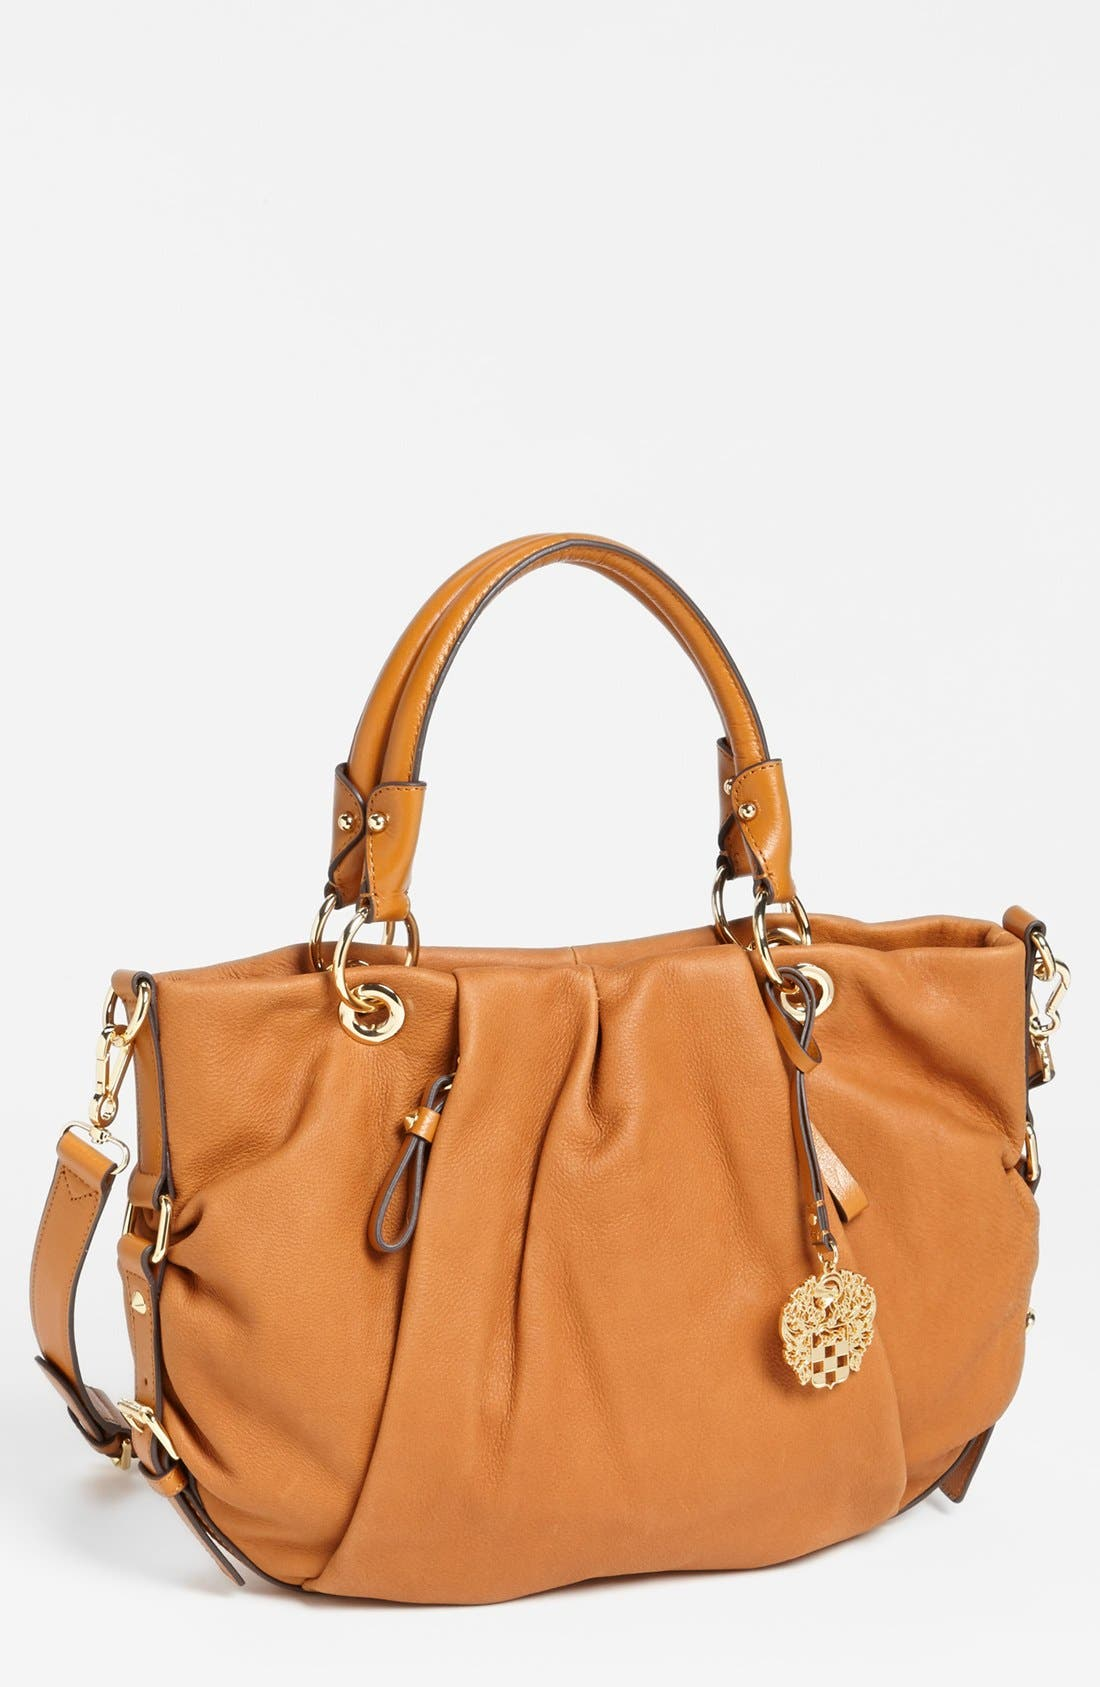 Alternate Image 1 Selected - Vince Camuto 'Christina' Satchel